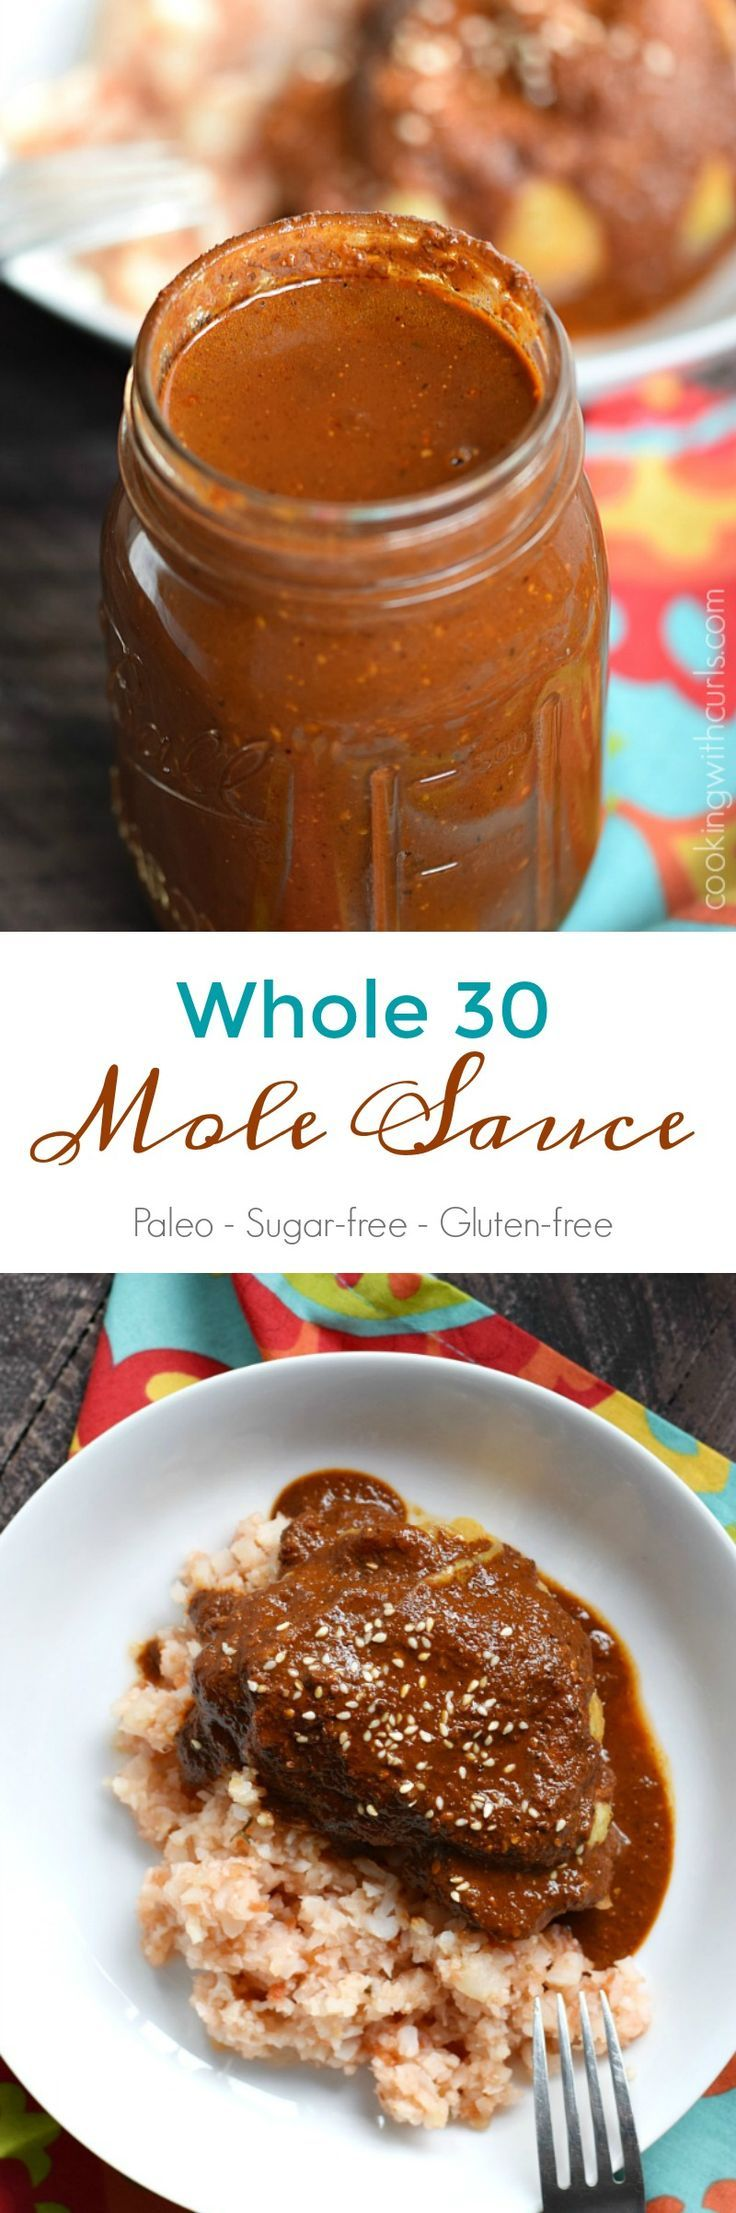 Your family and friends will never guess that this Whole 30 Mole Sauce is healthy, because it is so rich and delicious | #Paleo: